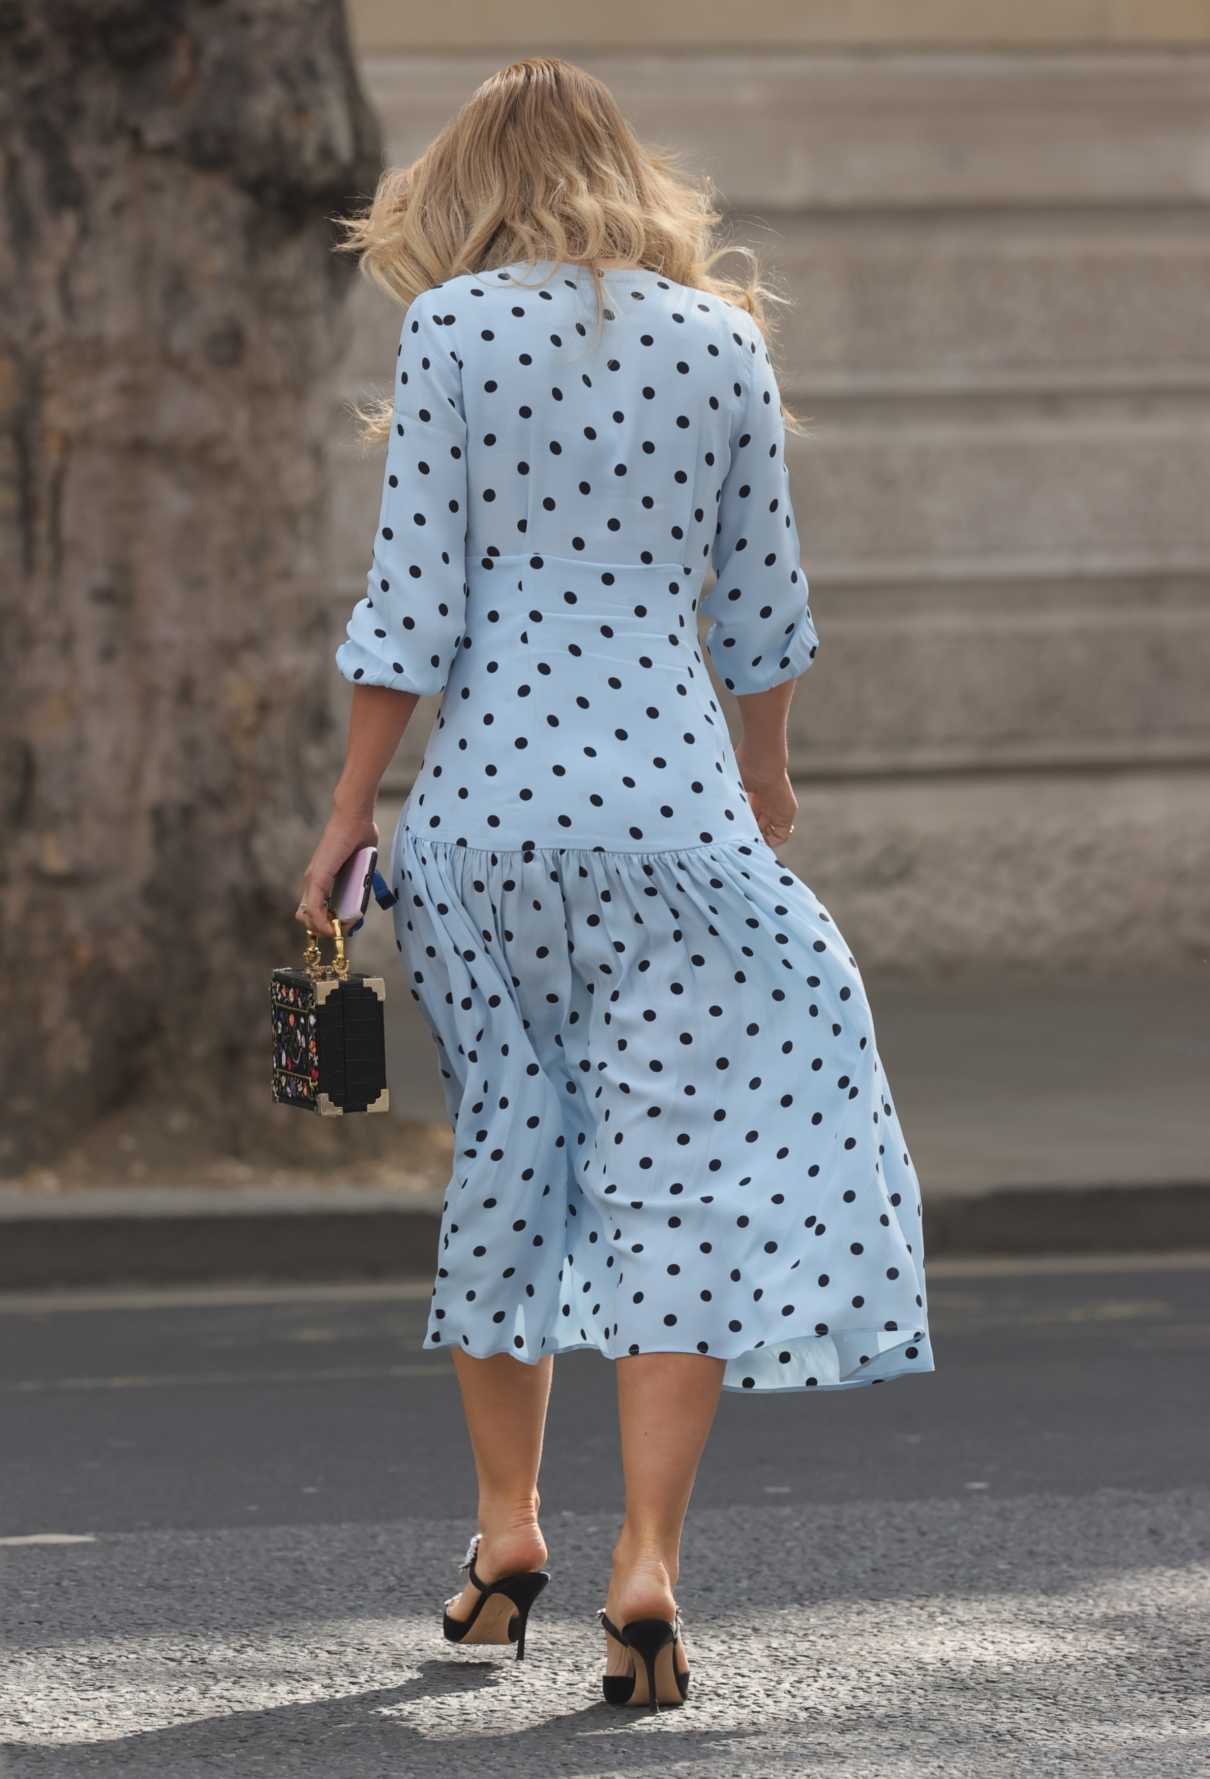 Vogue Williams in a Light Blue Polka Dot Dress